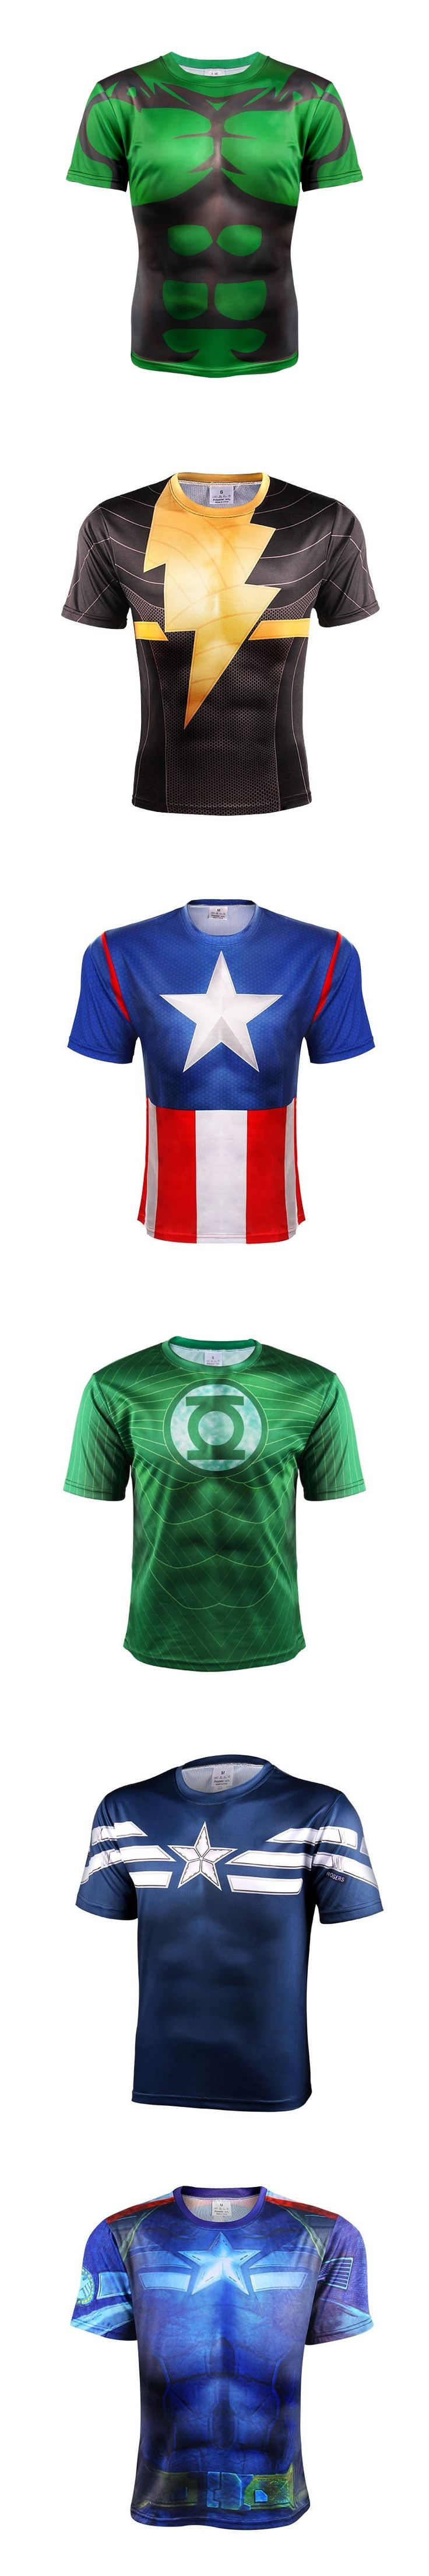 Captain America/Spiderman 3D Printed T shirt Men  breathable Shirts 2017 Crossfit Tops For Male Fitness BodyBuilding Clothing WO